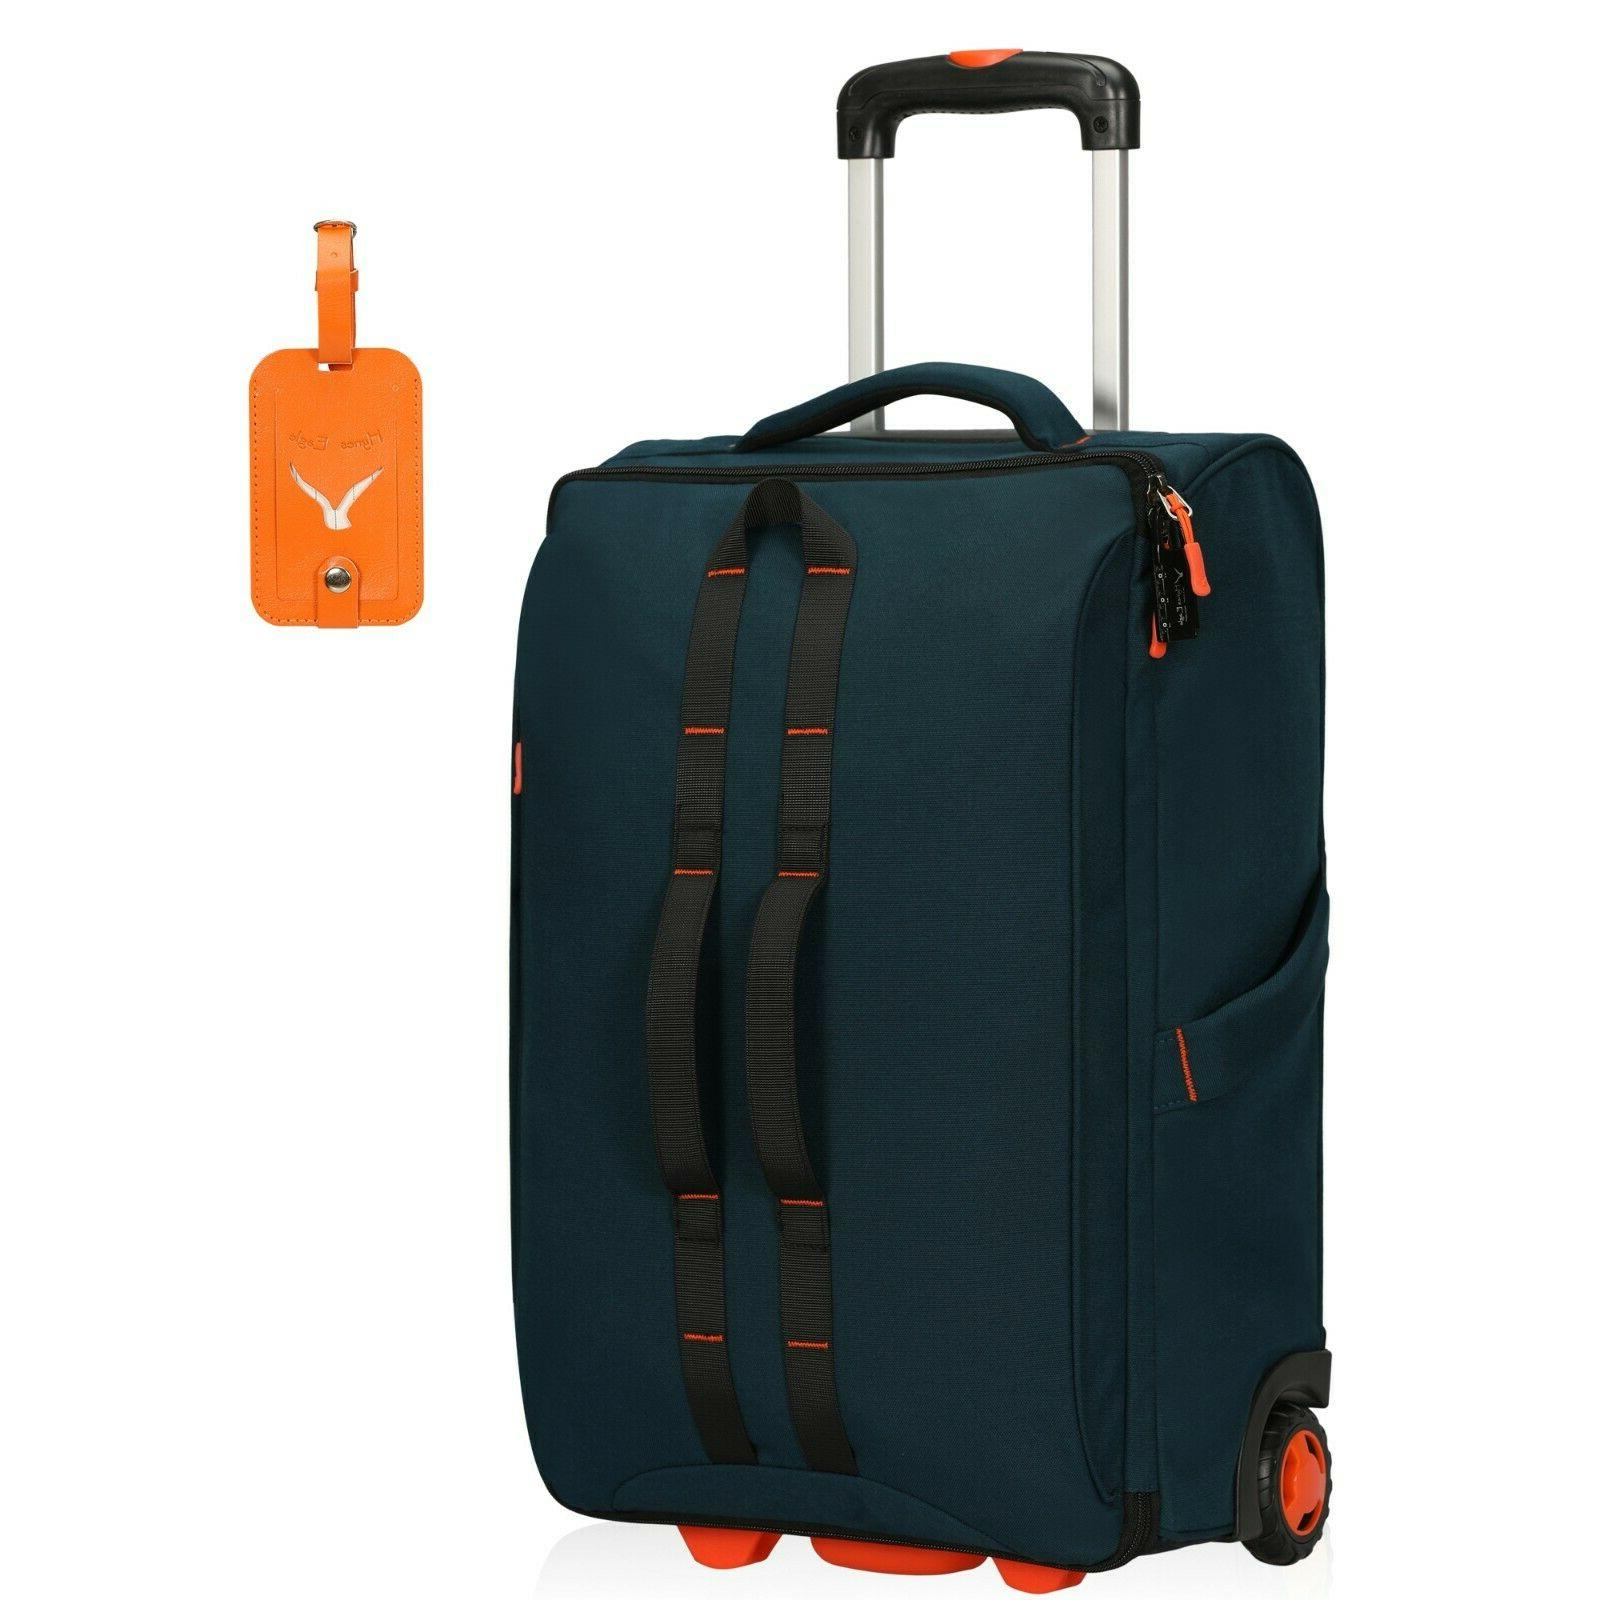 Hynes Eagle Rolling Luggage Softside Travel Gear